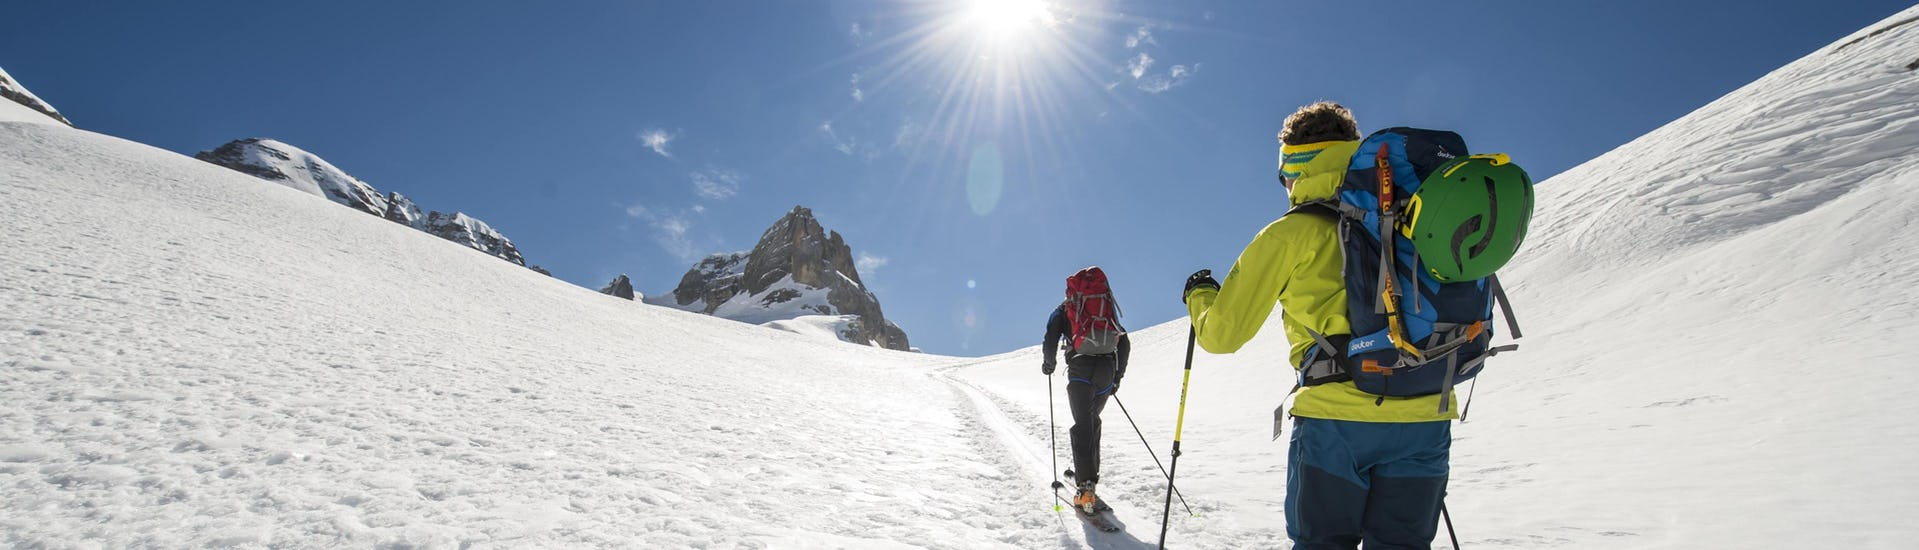 A ski touring guide is guiding another skier to the mountain summit while on a ski tour in the ski resort of Avoriaz.